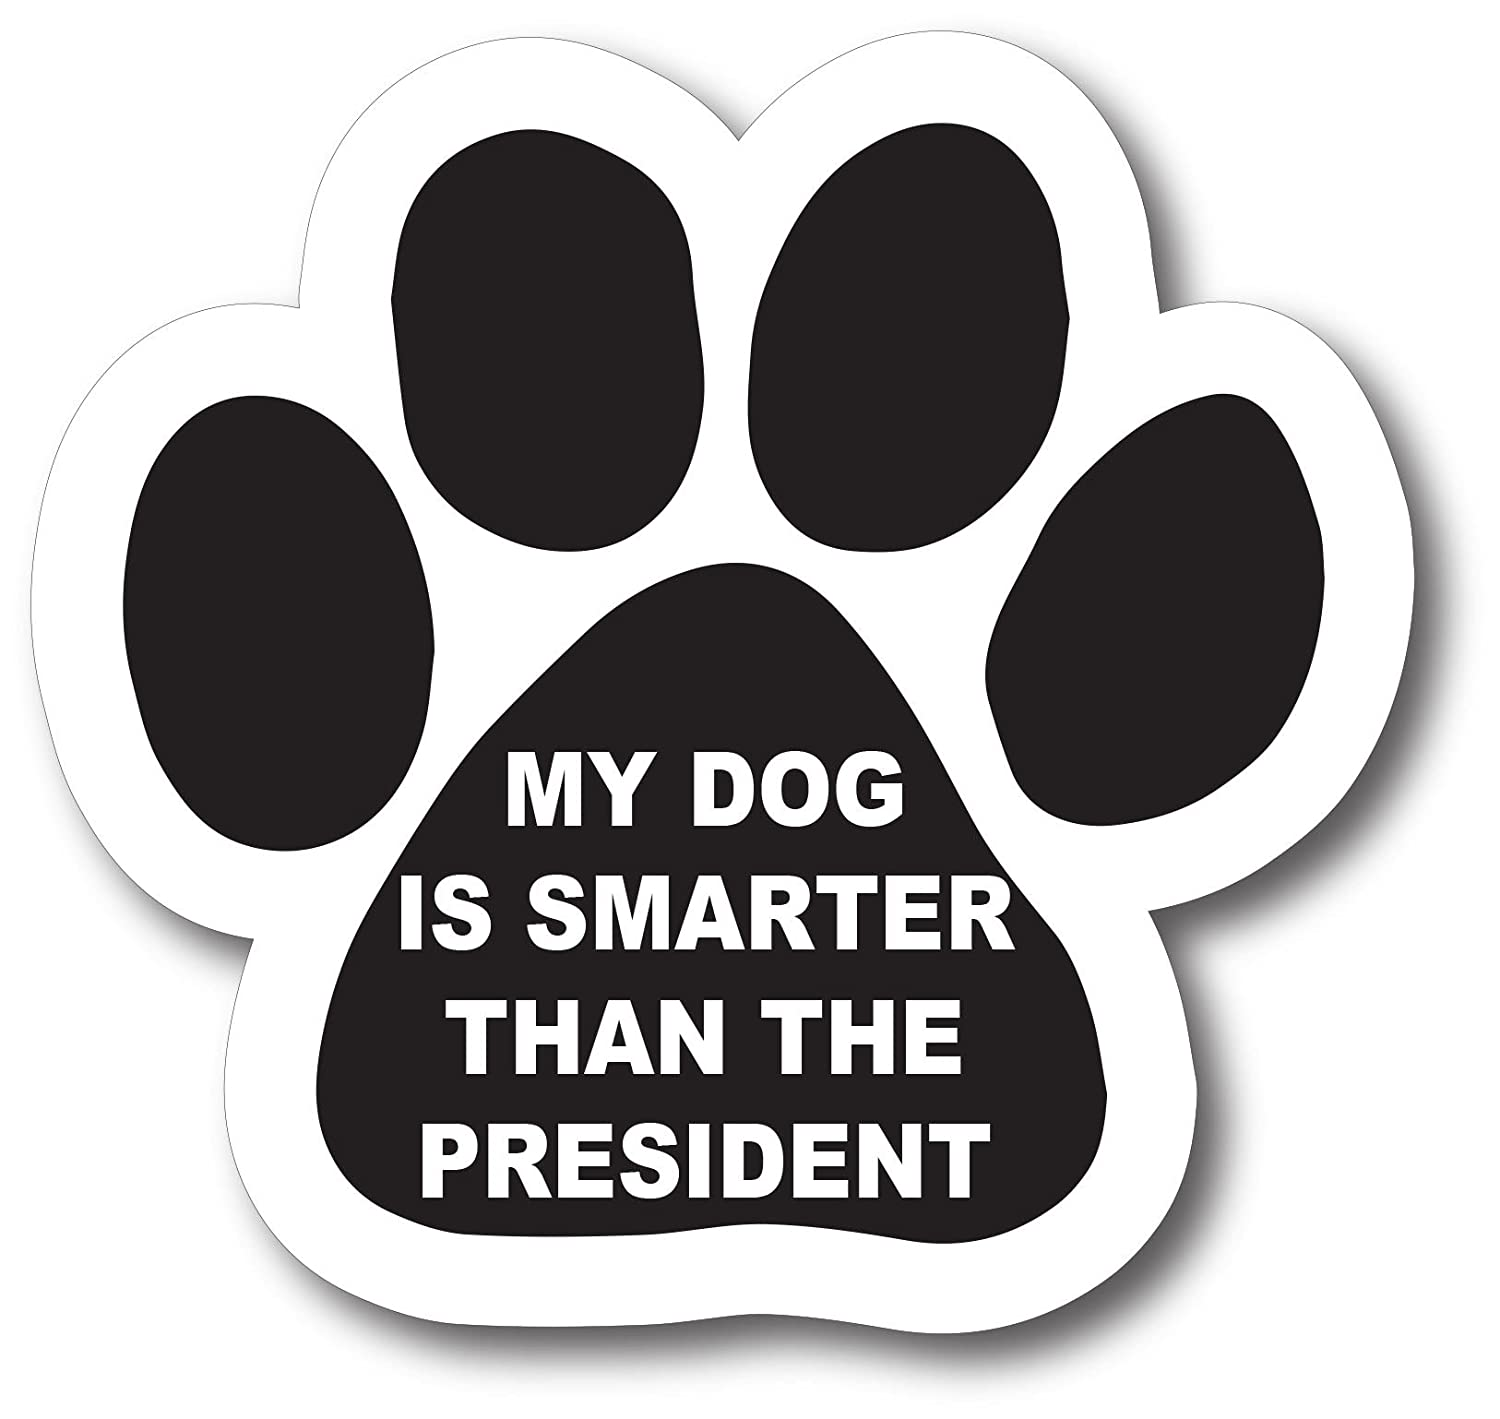 Magnet Me Up My Dog is Smarter Than The President Pawprint Car Magnet Paw Print Auto Truck Decal Magnet P-59